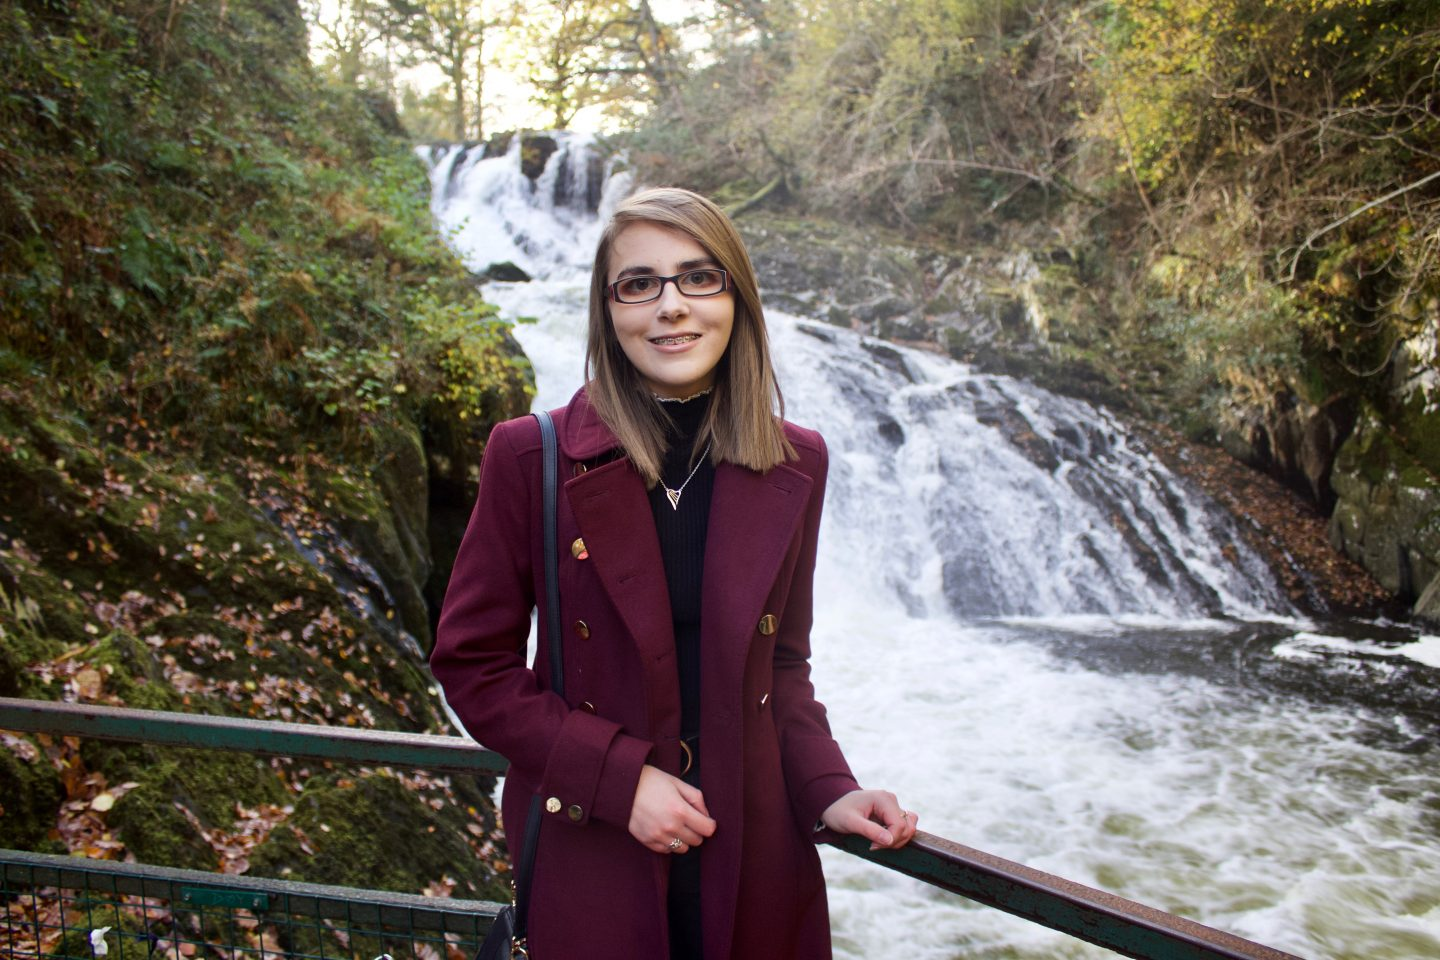 Learning to accept my differences: A photo of Elin wearing a burgundy long line coat standing in front of a waterfall